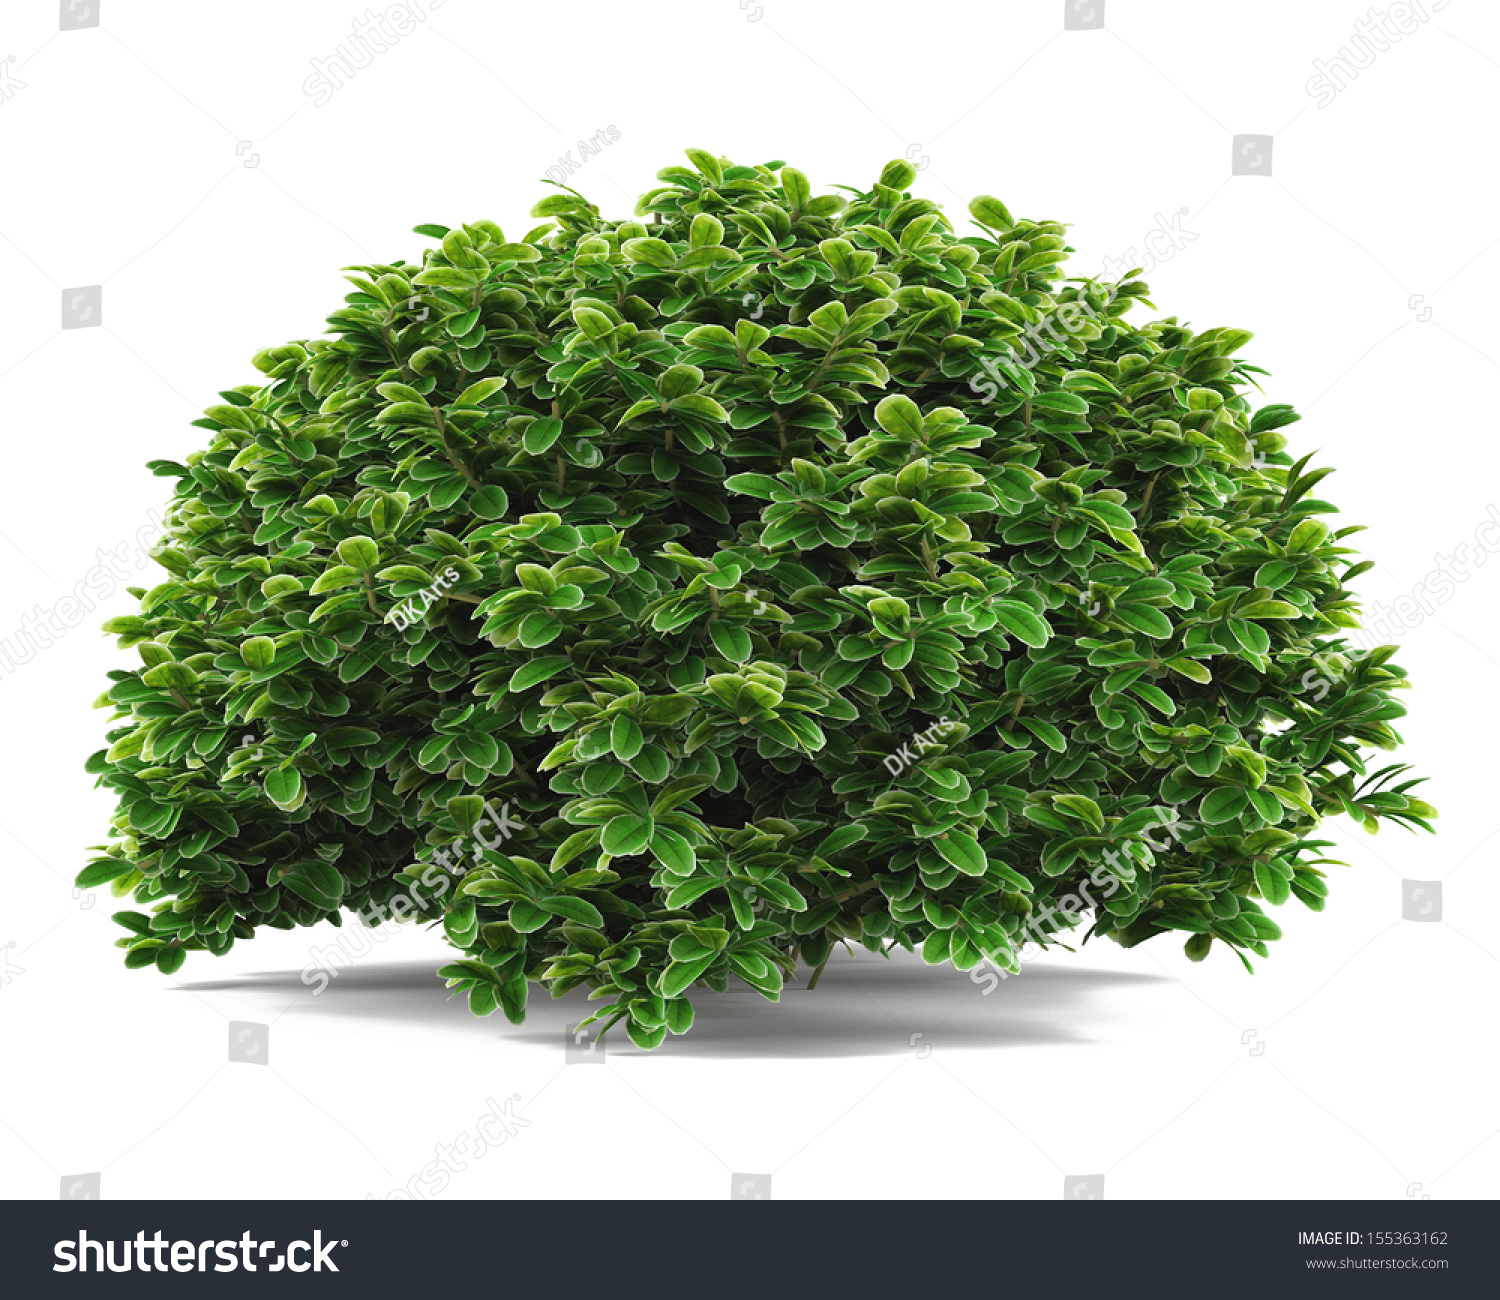 Parsley Illustration Plant Bush Isolated St...